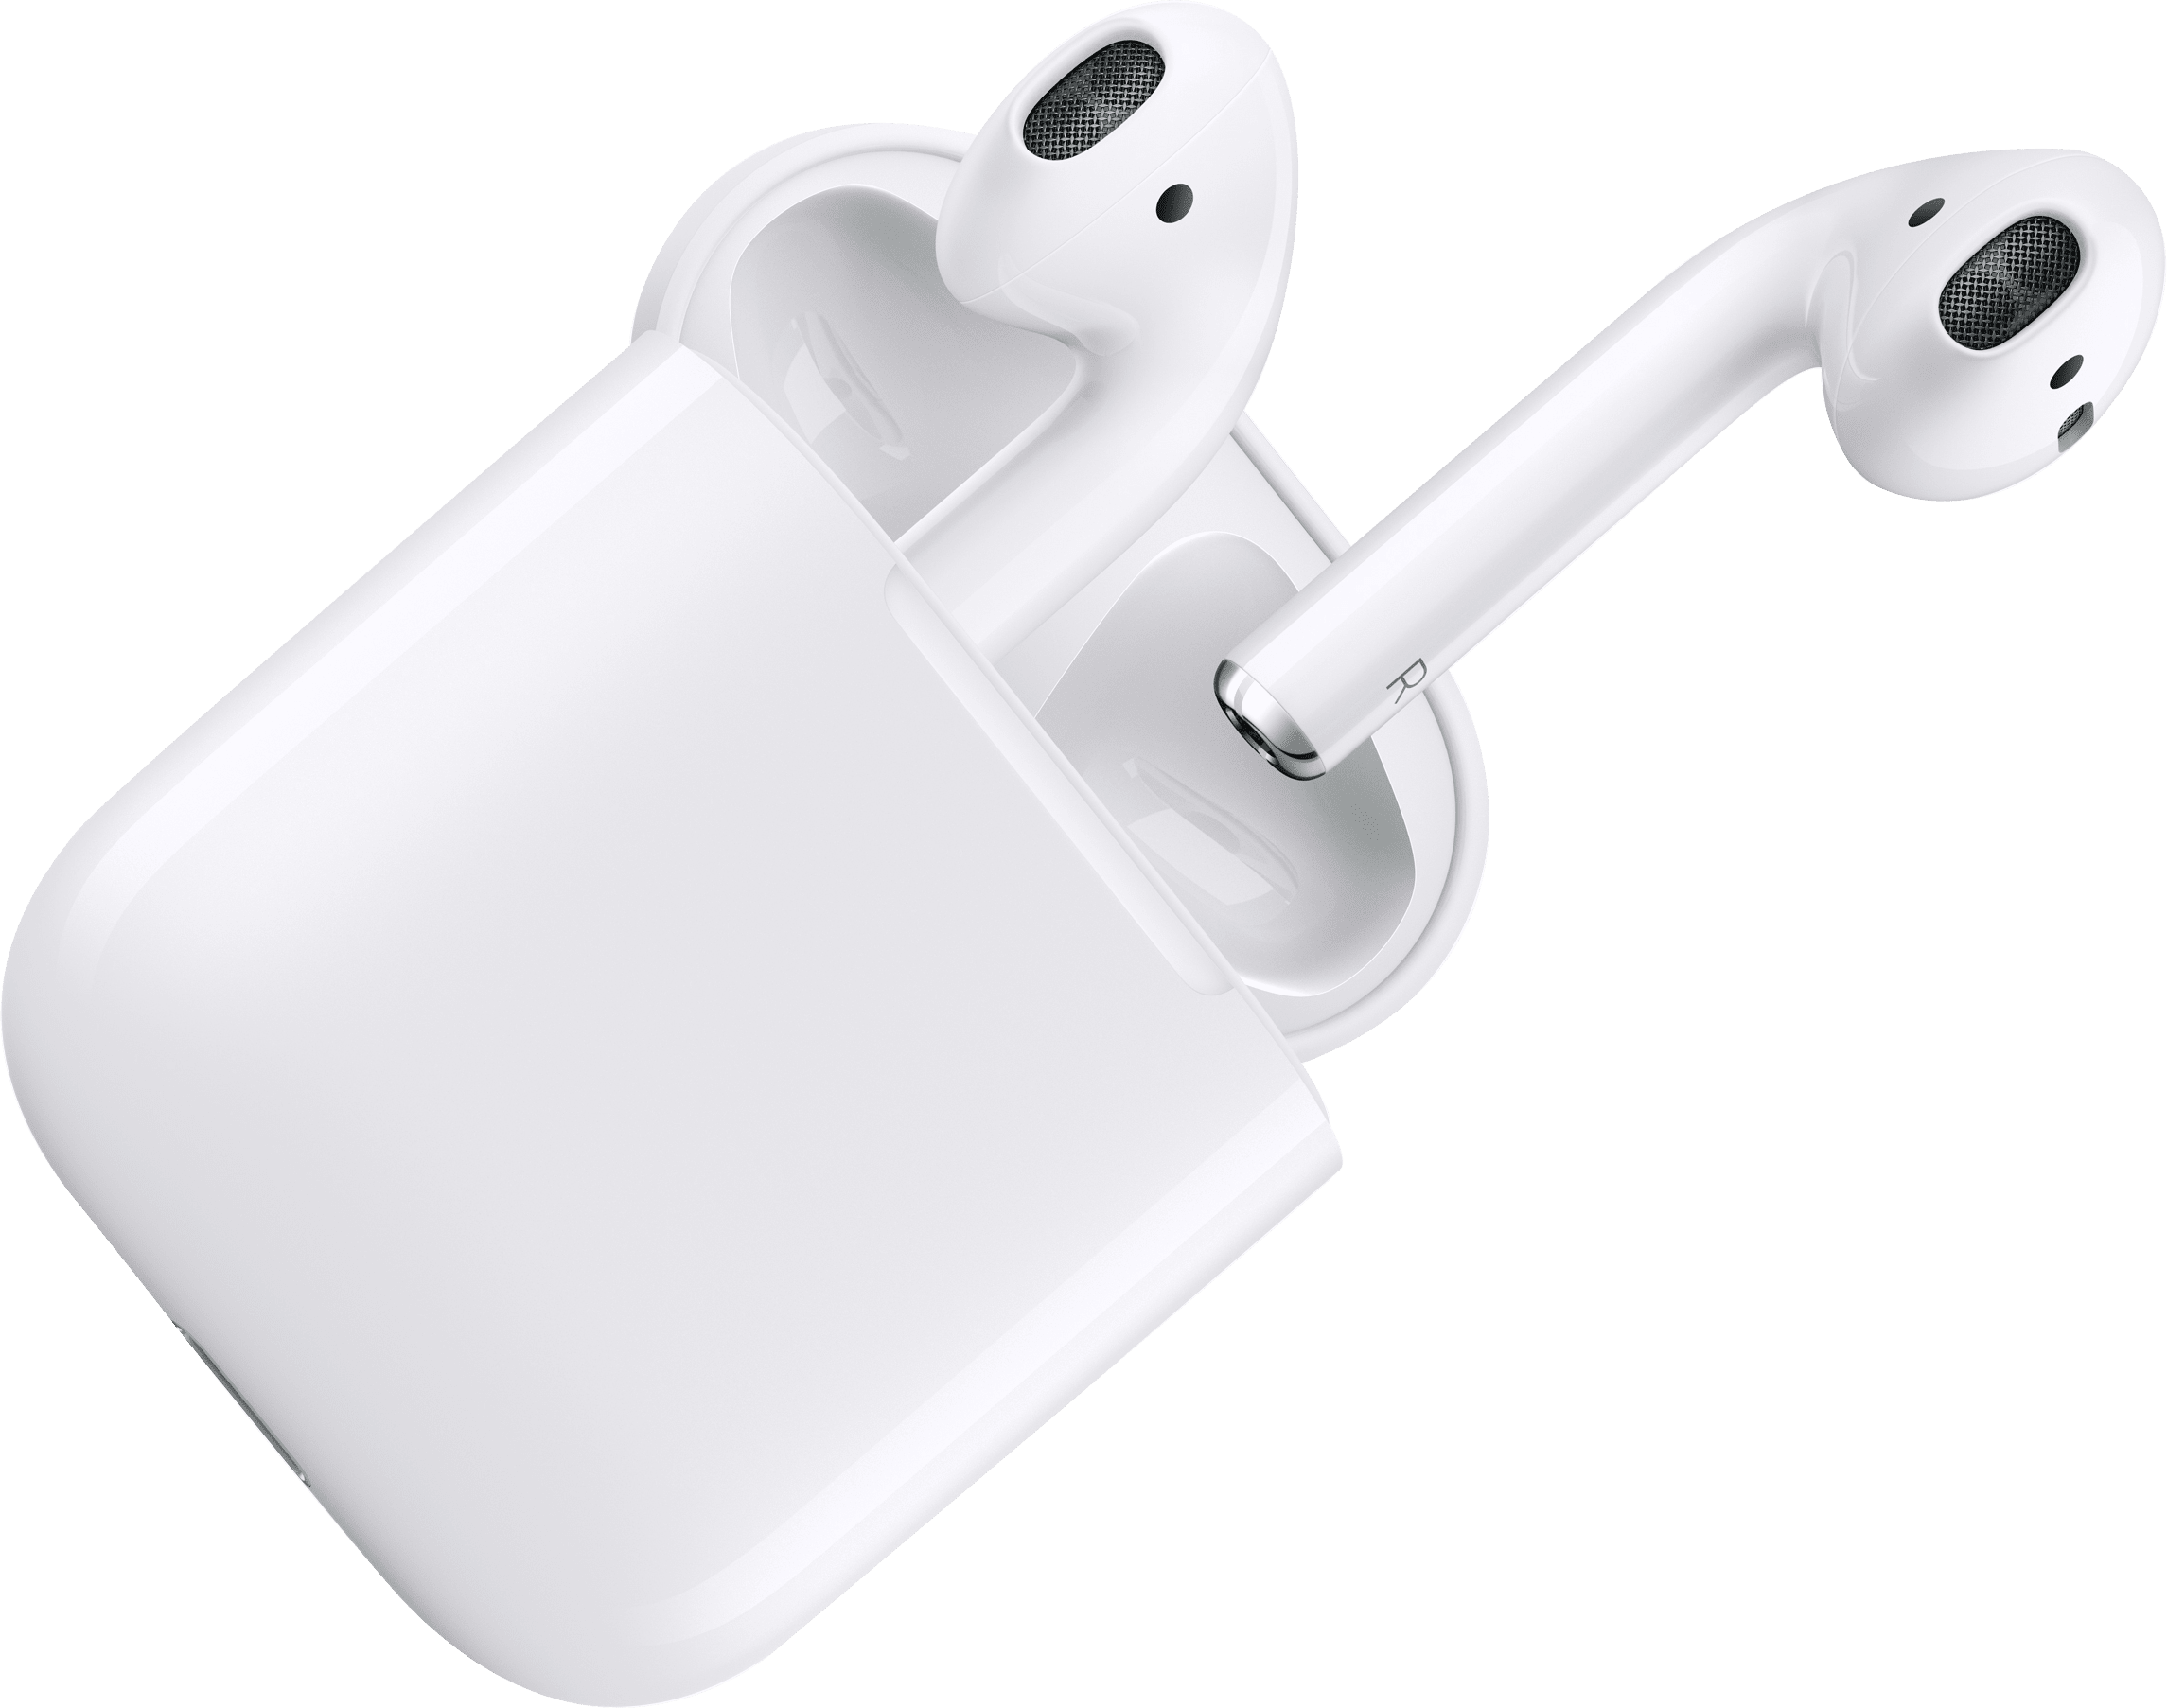 allapplenews-product-AirPods